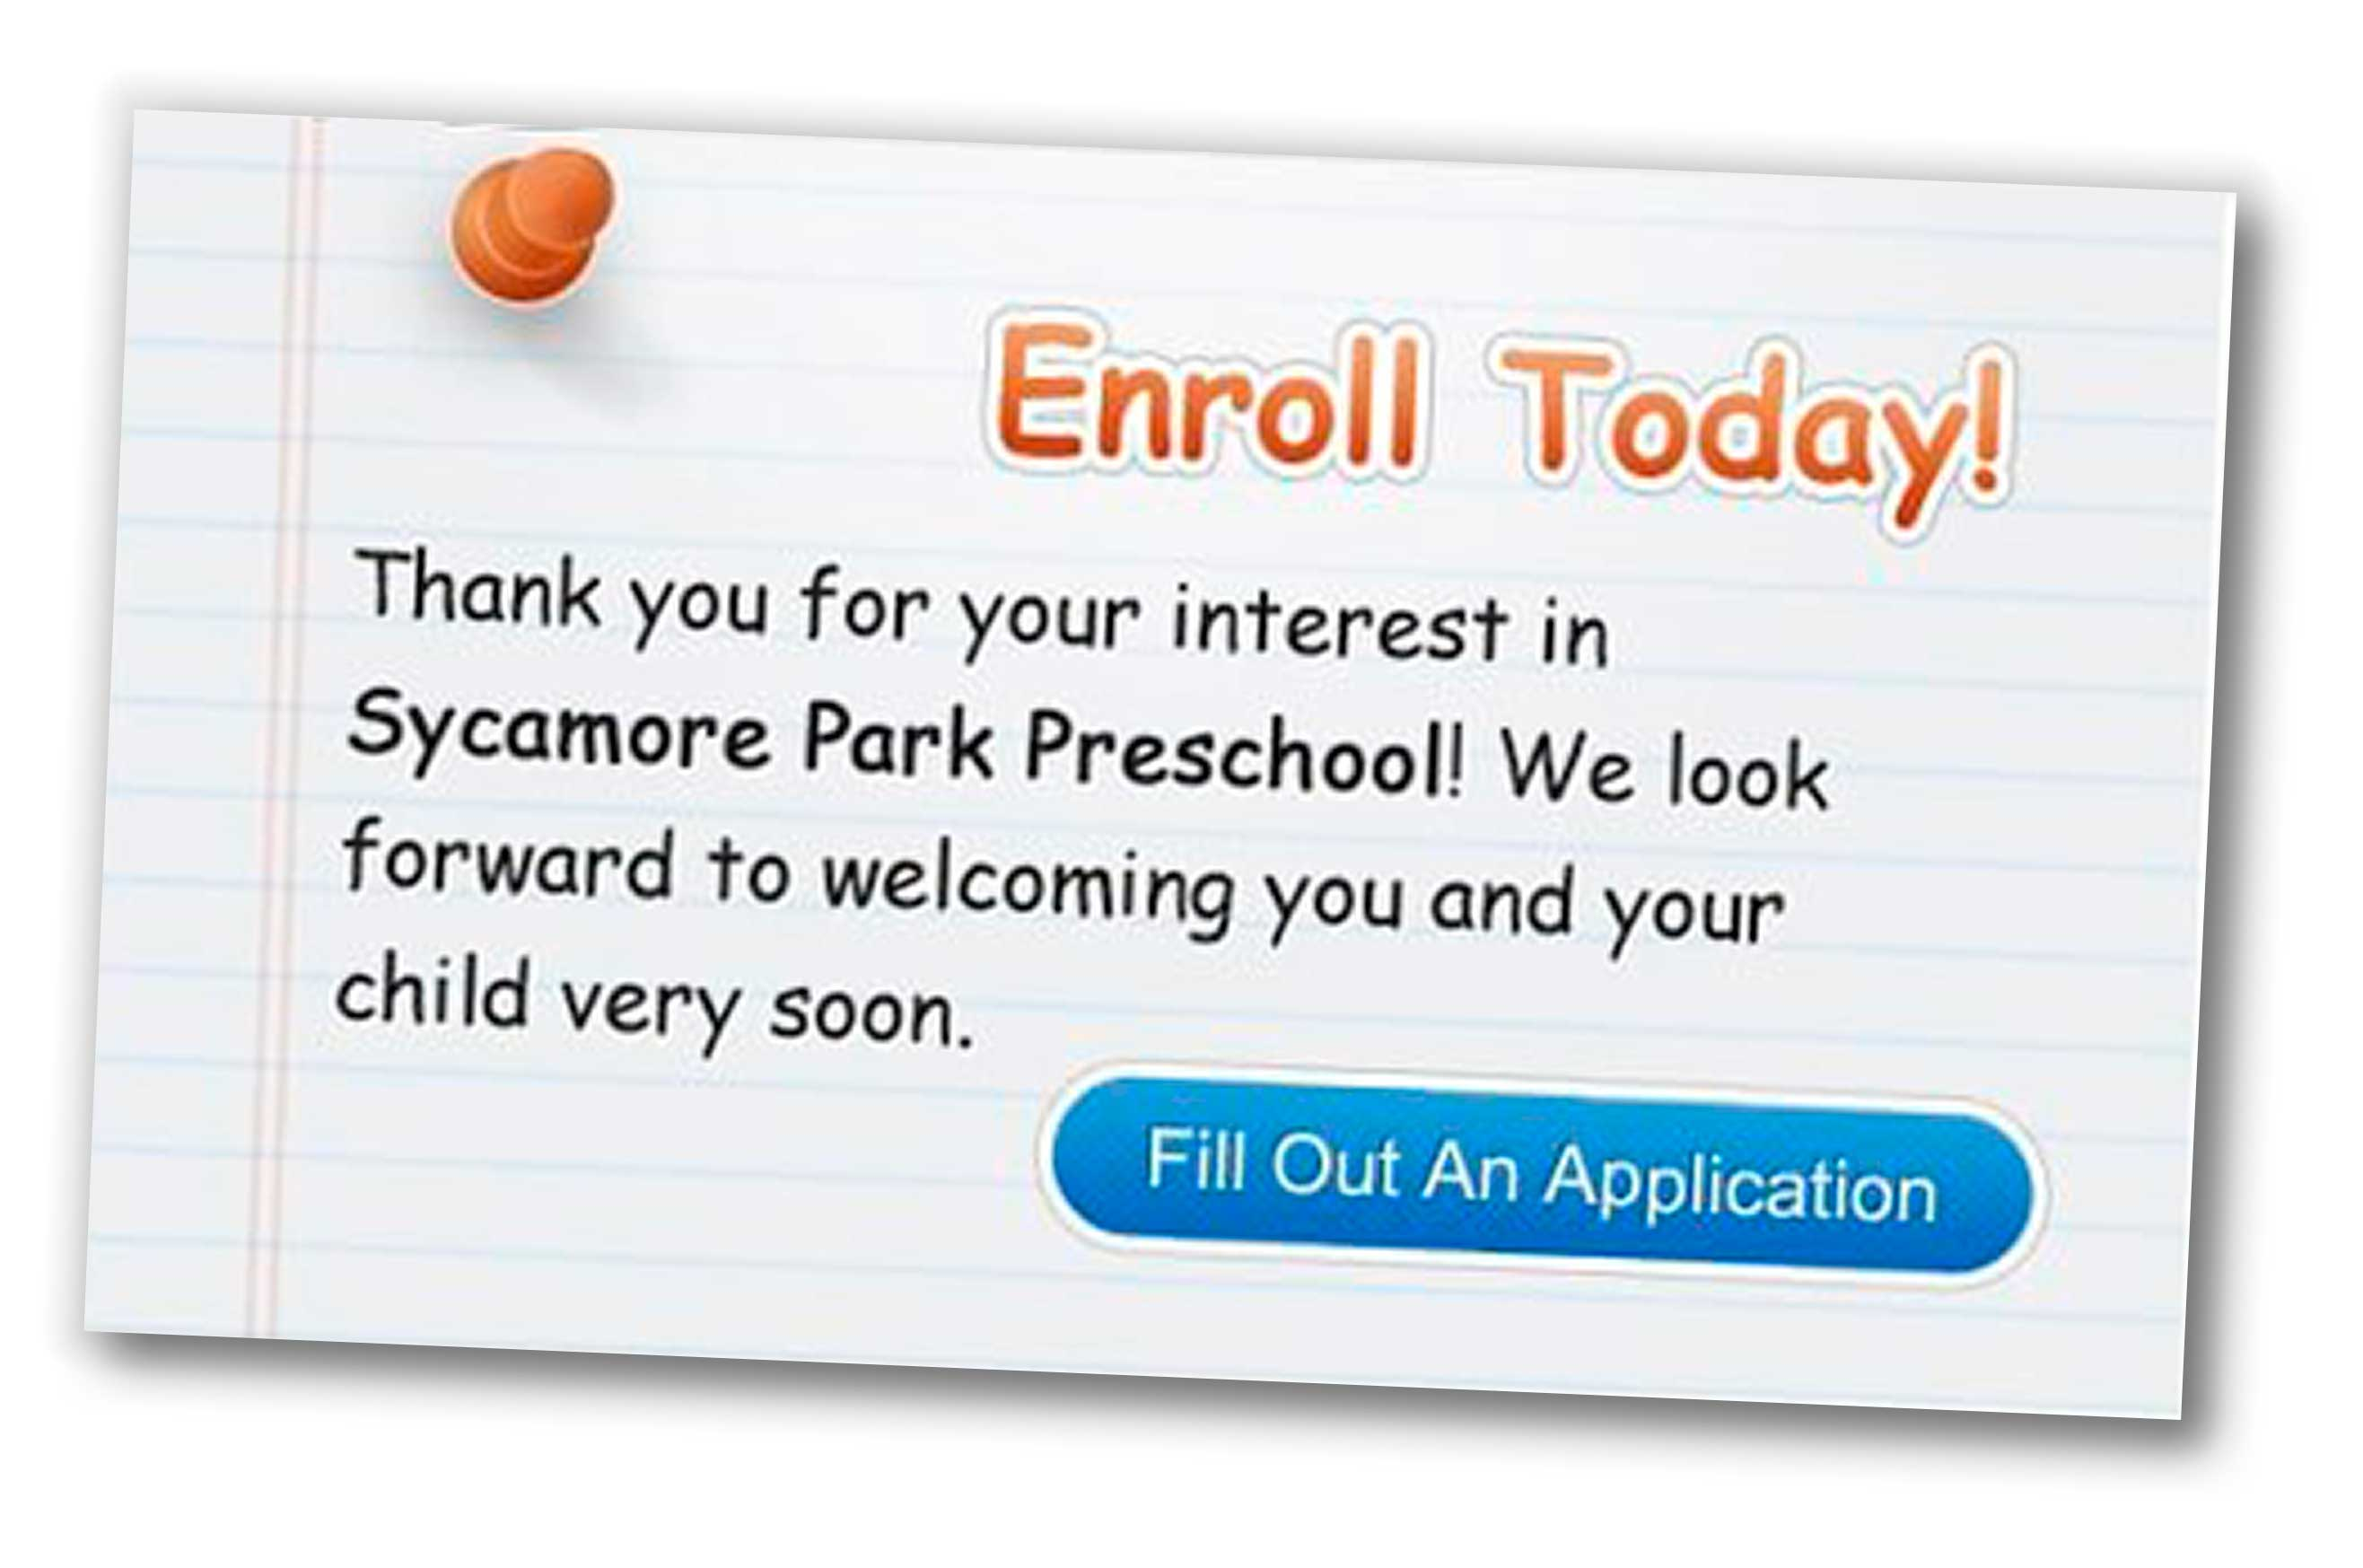 Sycamore Park Preschool & Child Care Center - Enroll Today